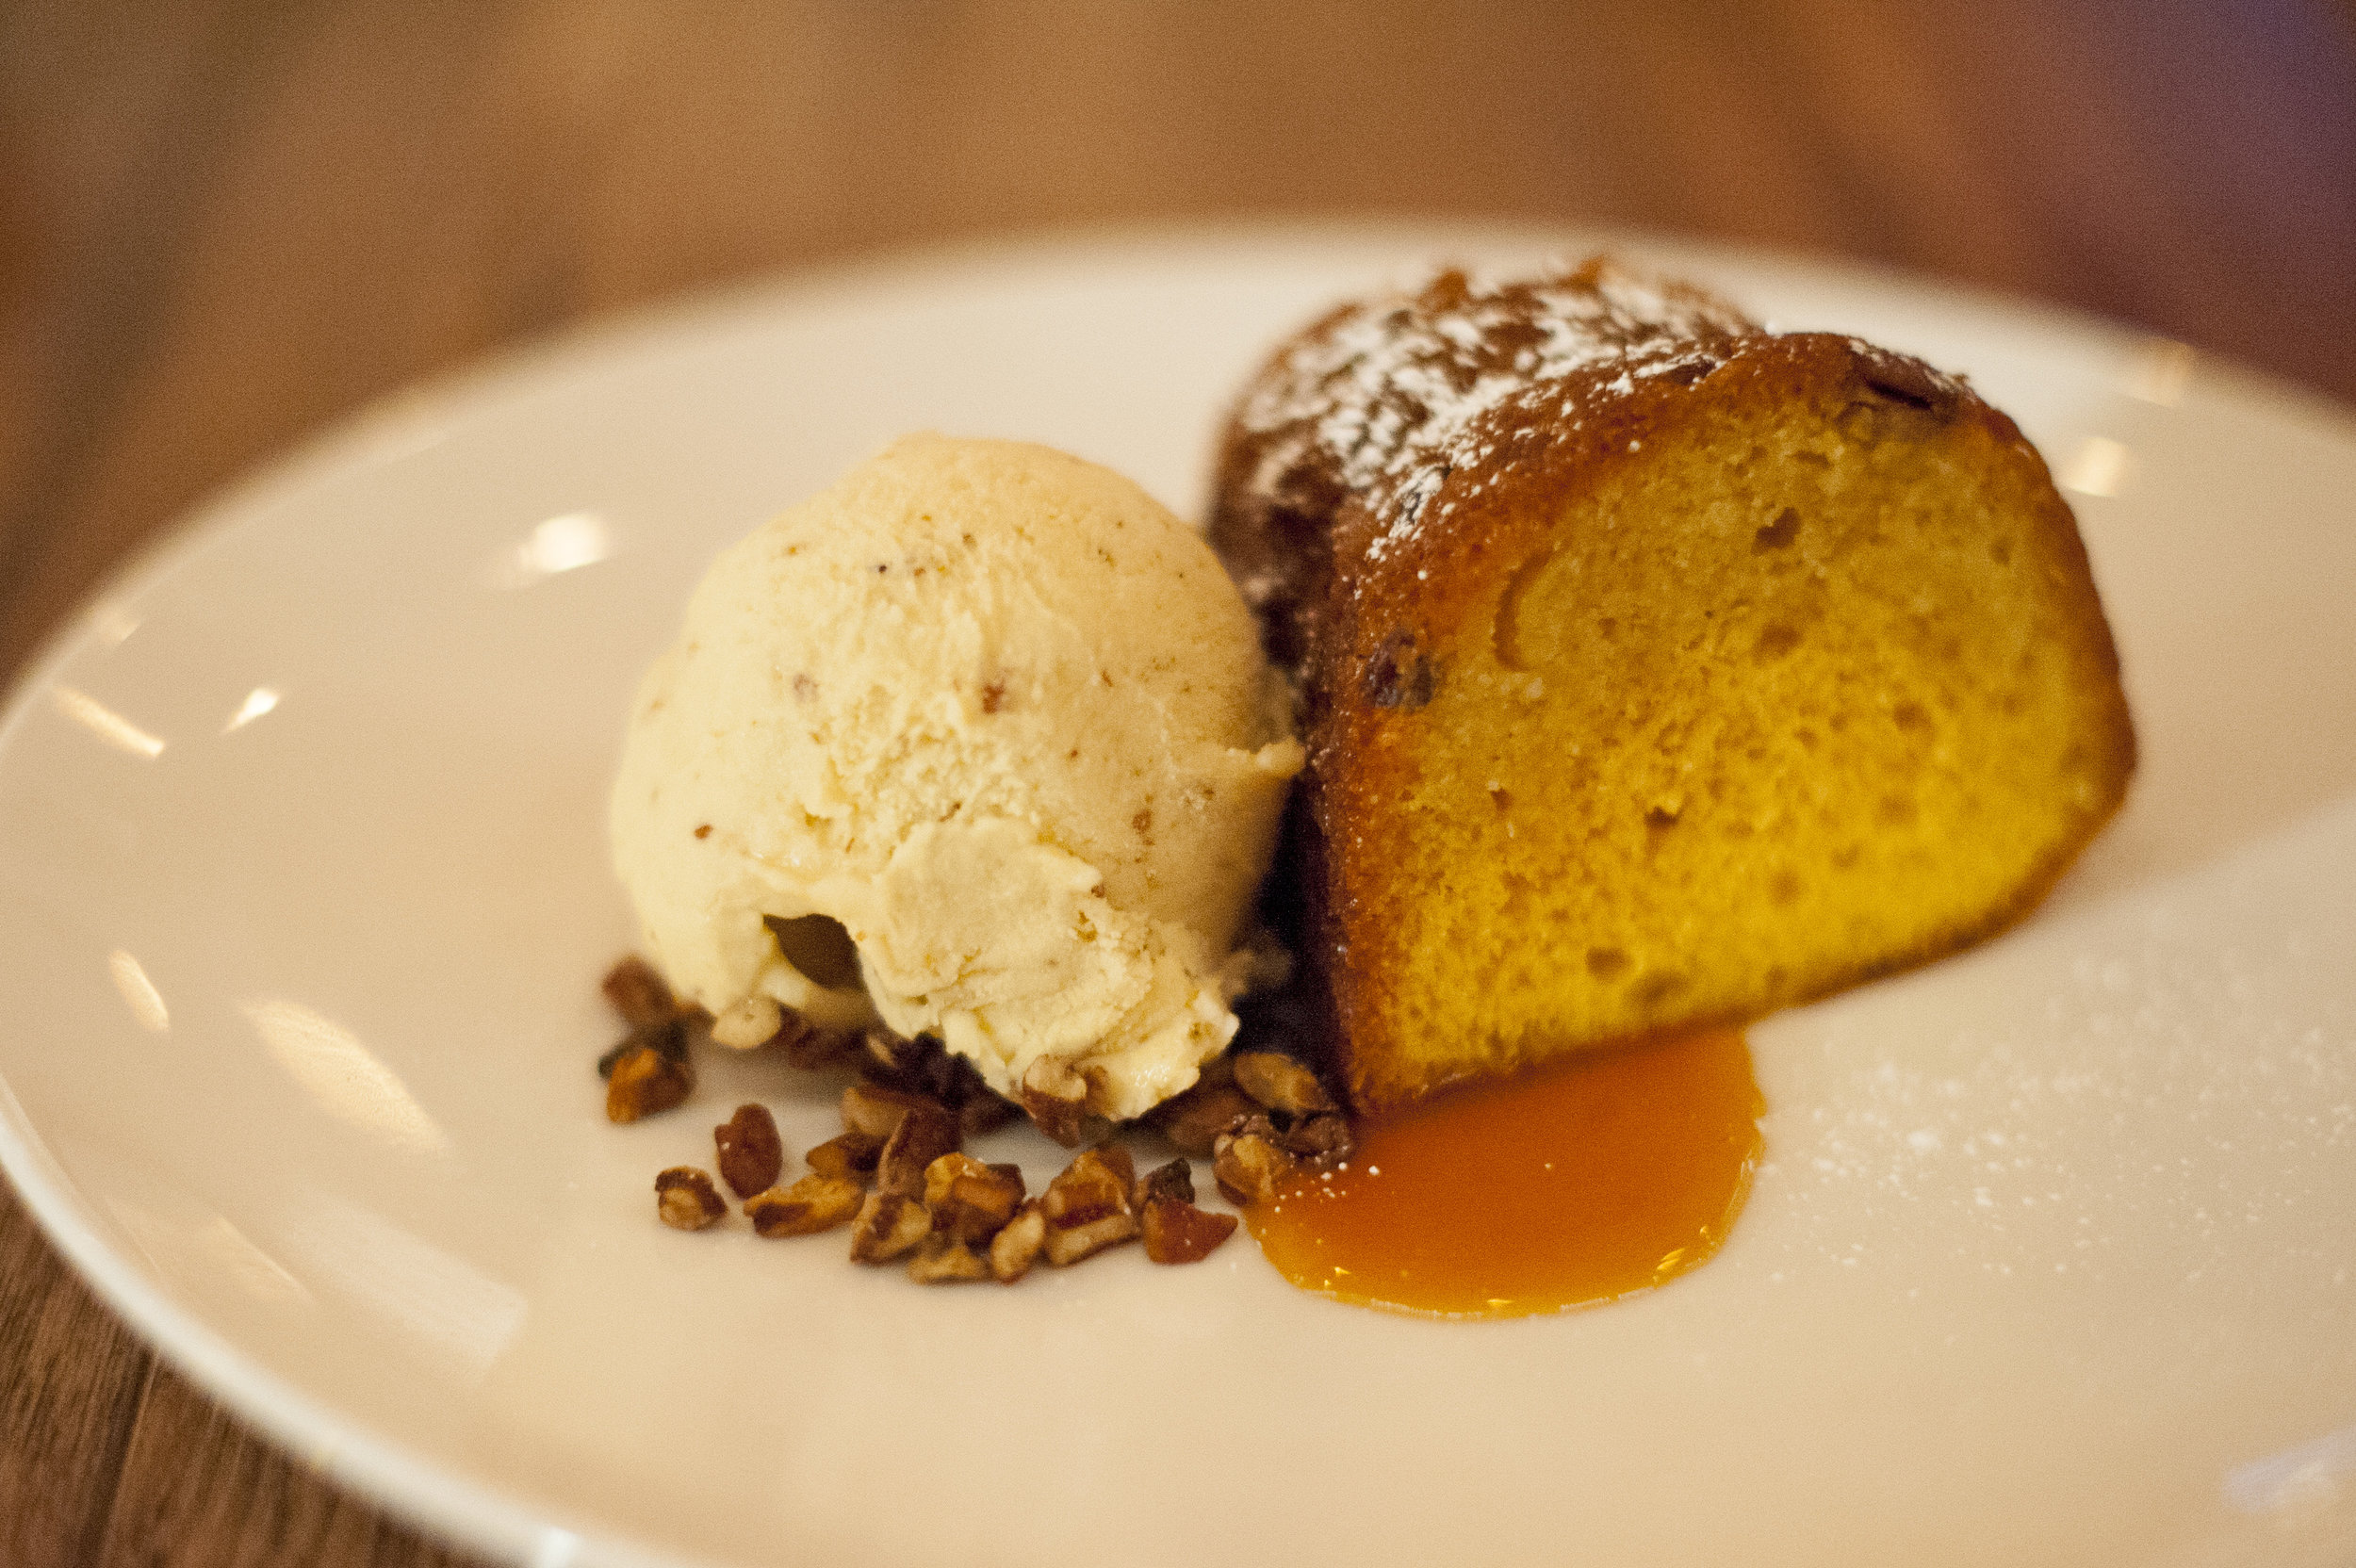 Crabtrees' Monkey Rum Cake doesn't hold back on the sweetness, but is balanced by the vanilla gelato and bits of pecan for a rich, textured experience.